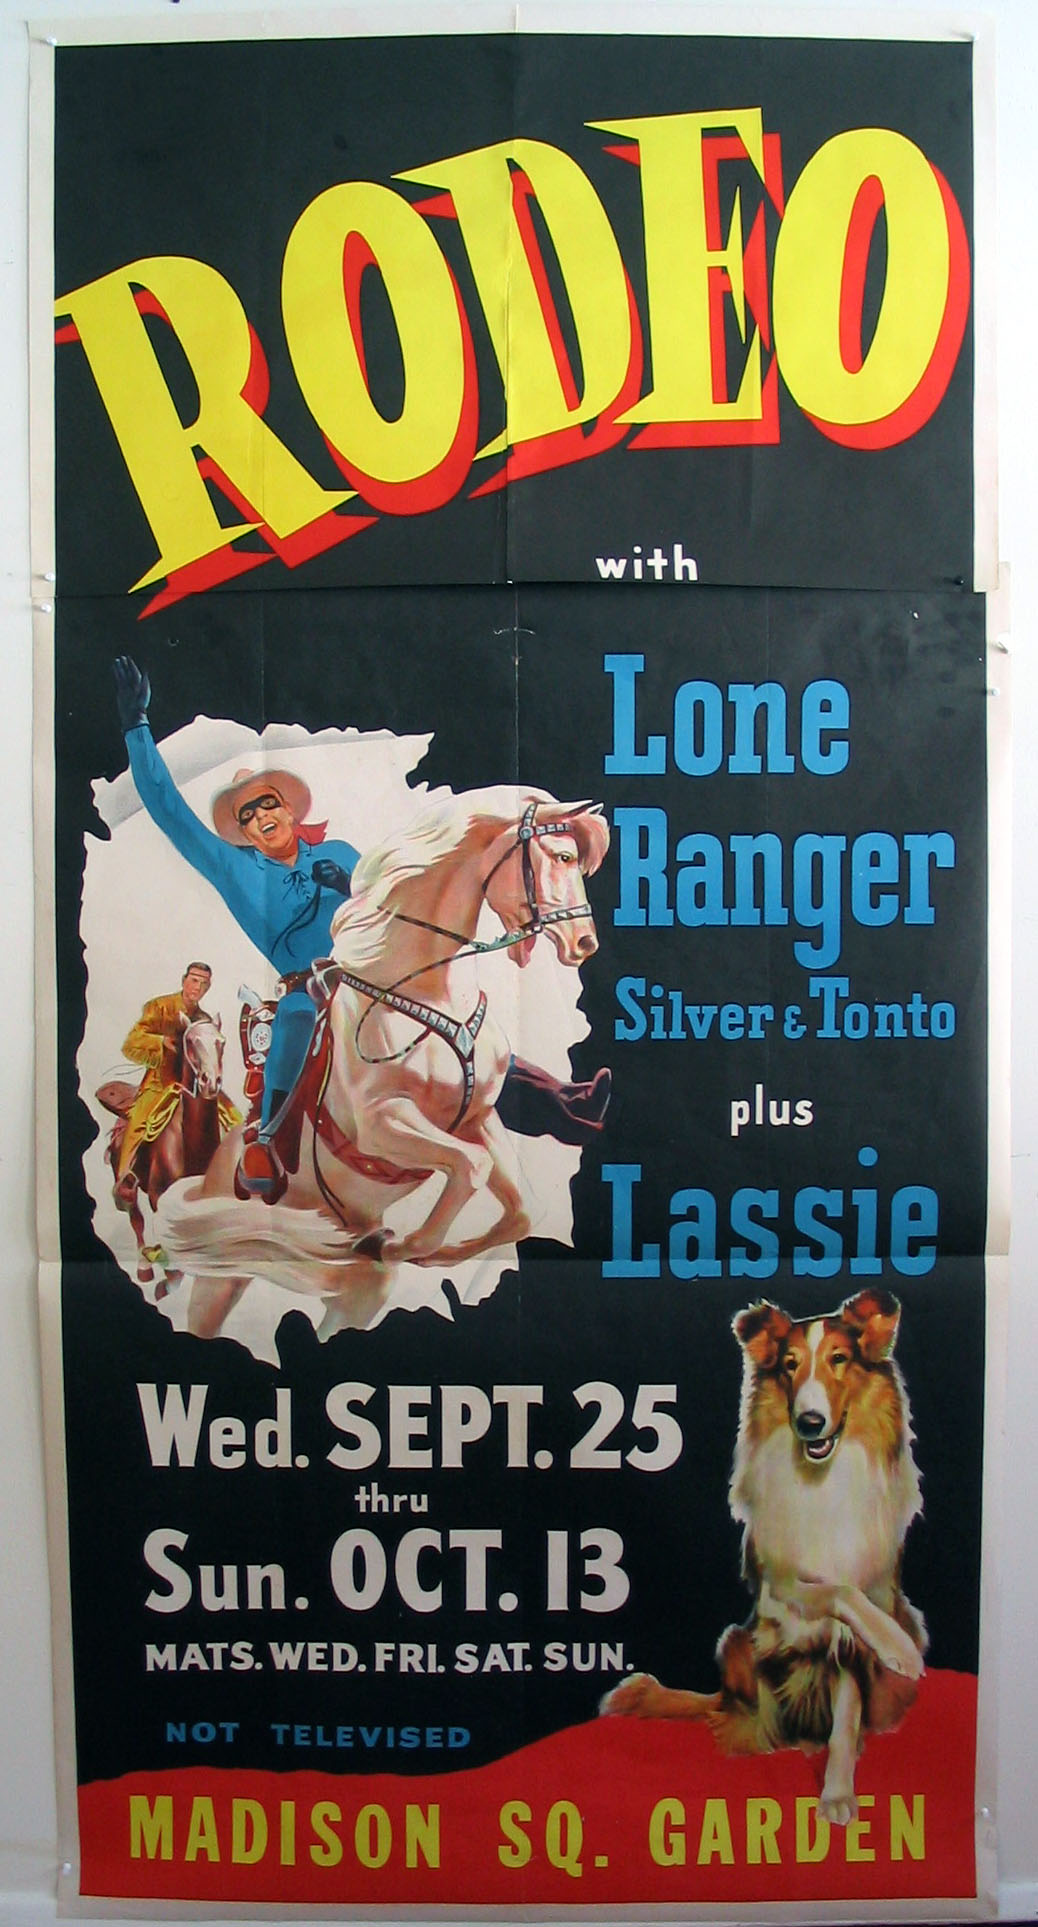 LONE RANGER RODEO WITH LASSIE @ FilmPosters.com